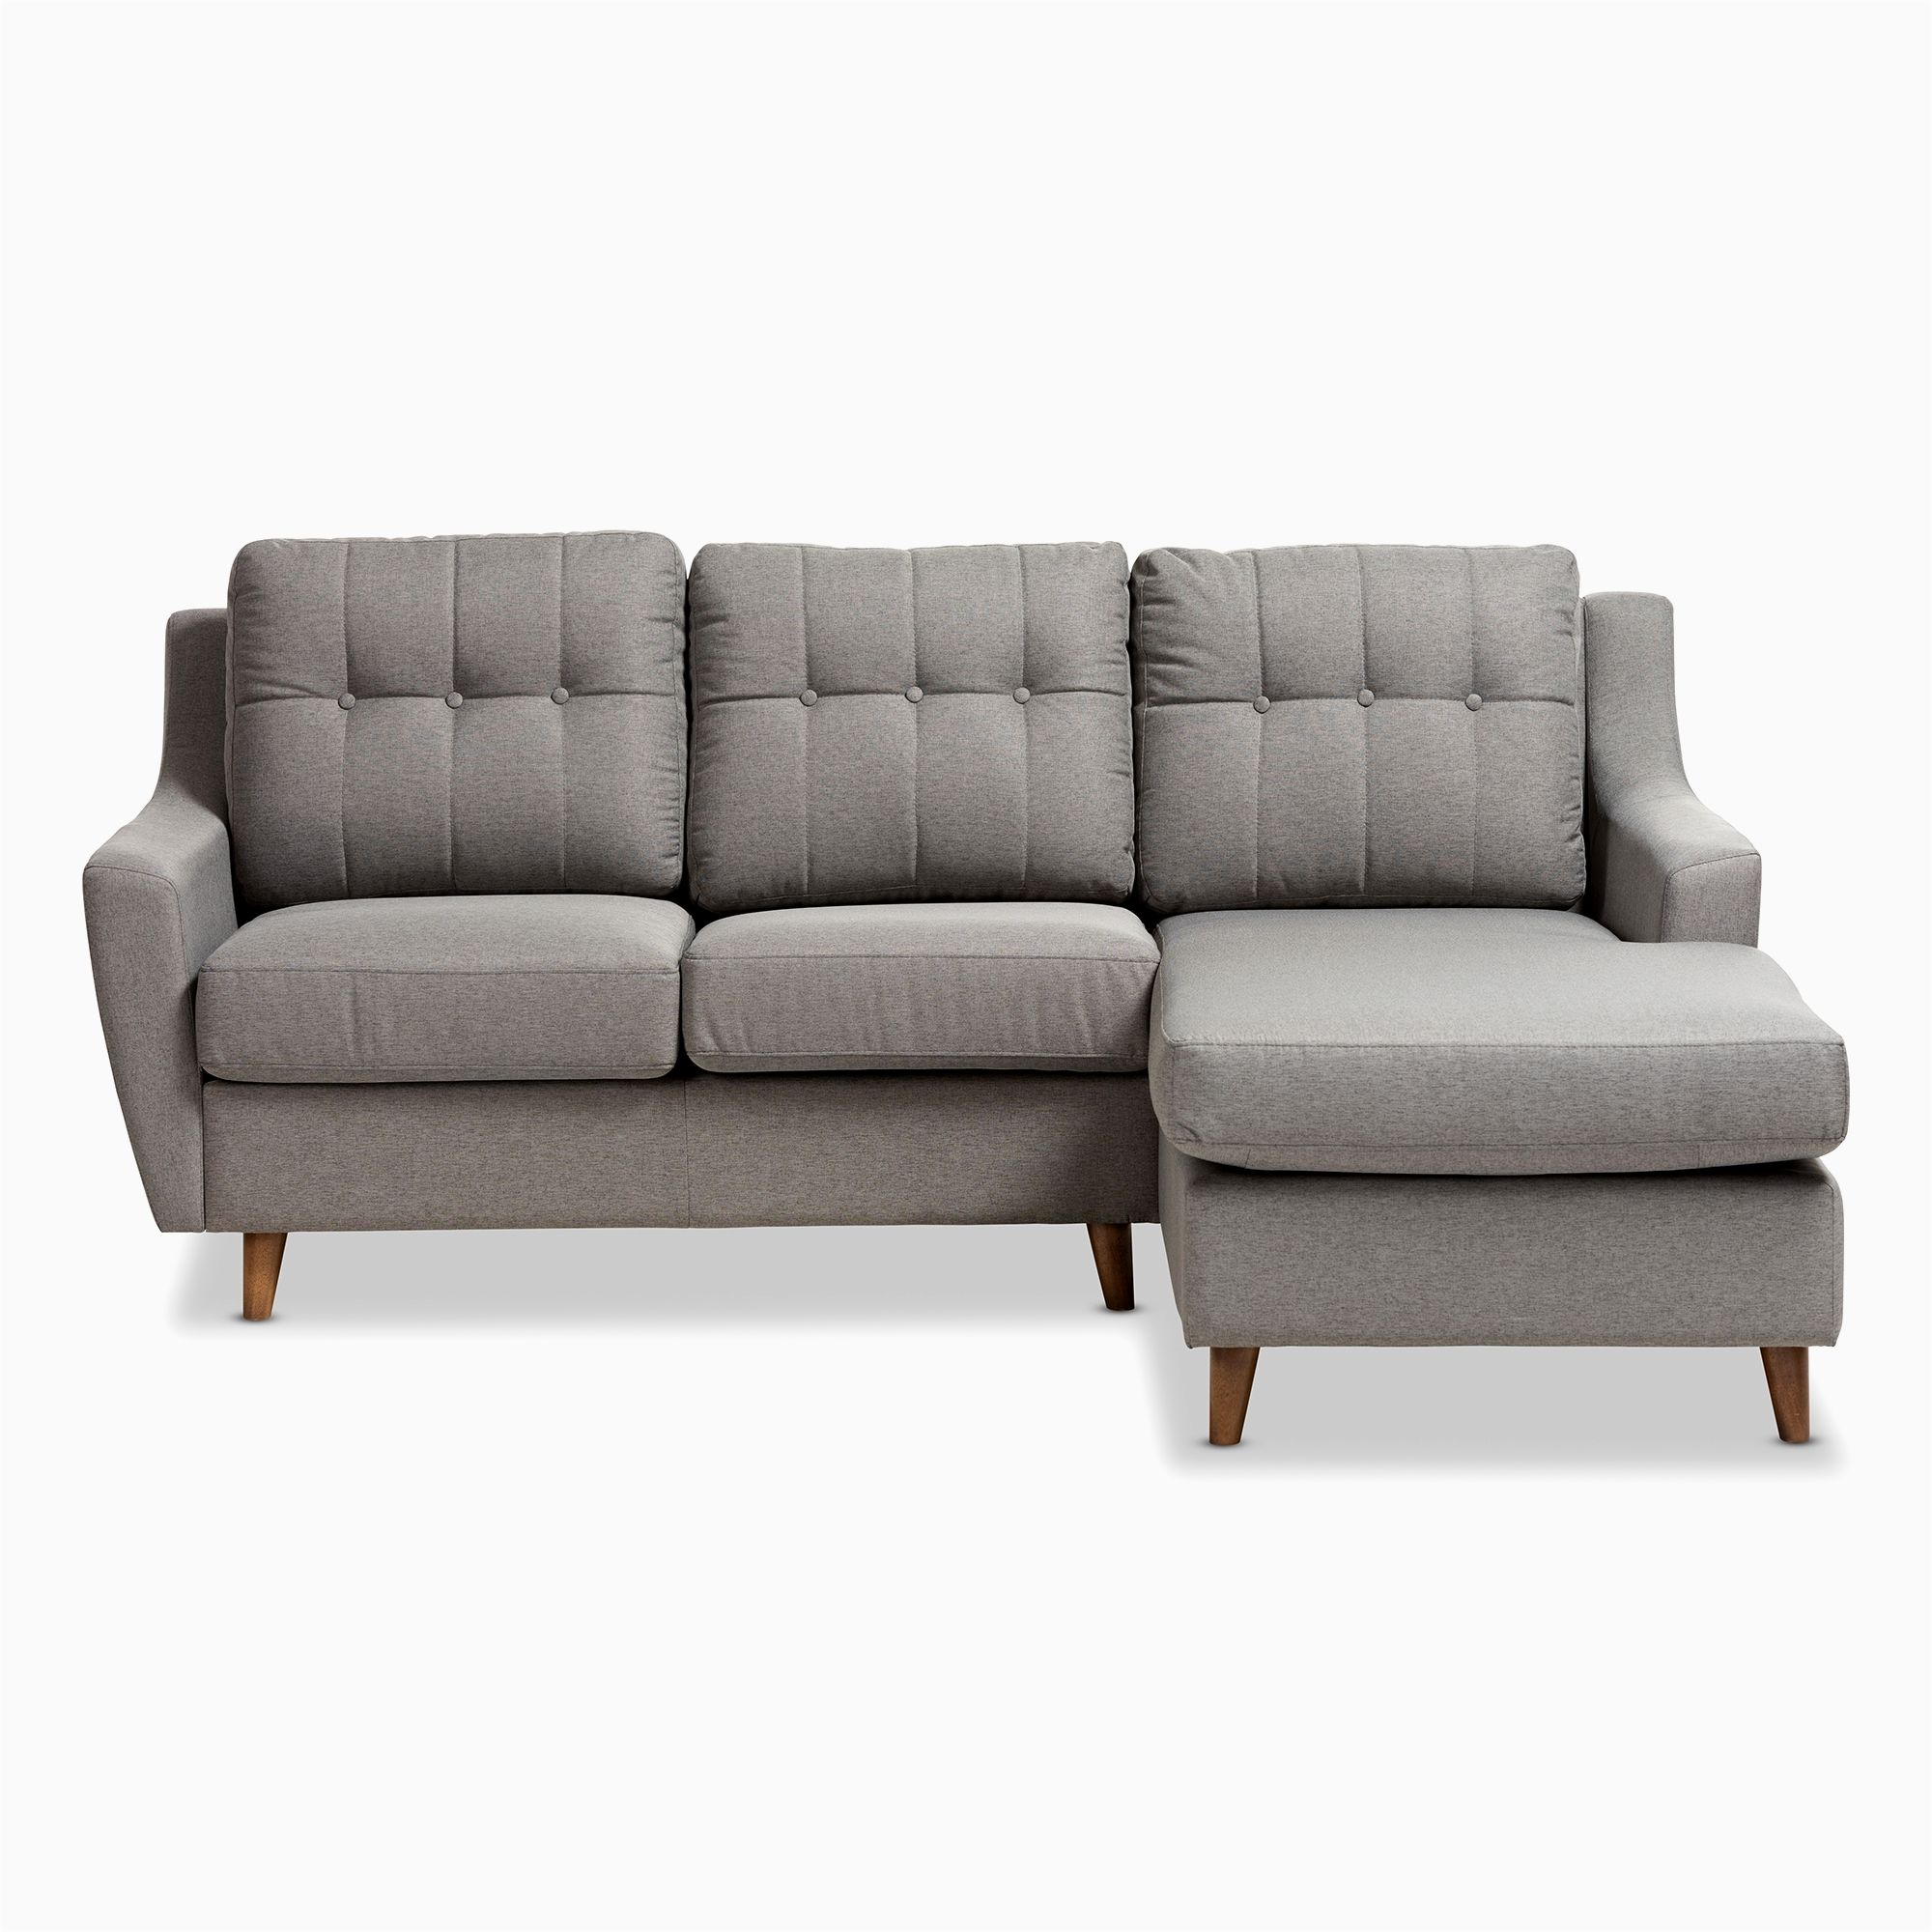 Beautiful Sofas For Sale Cheap Pattern